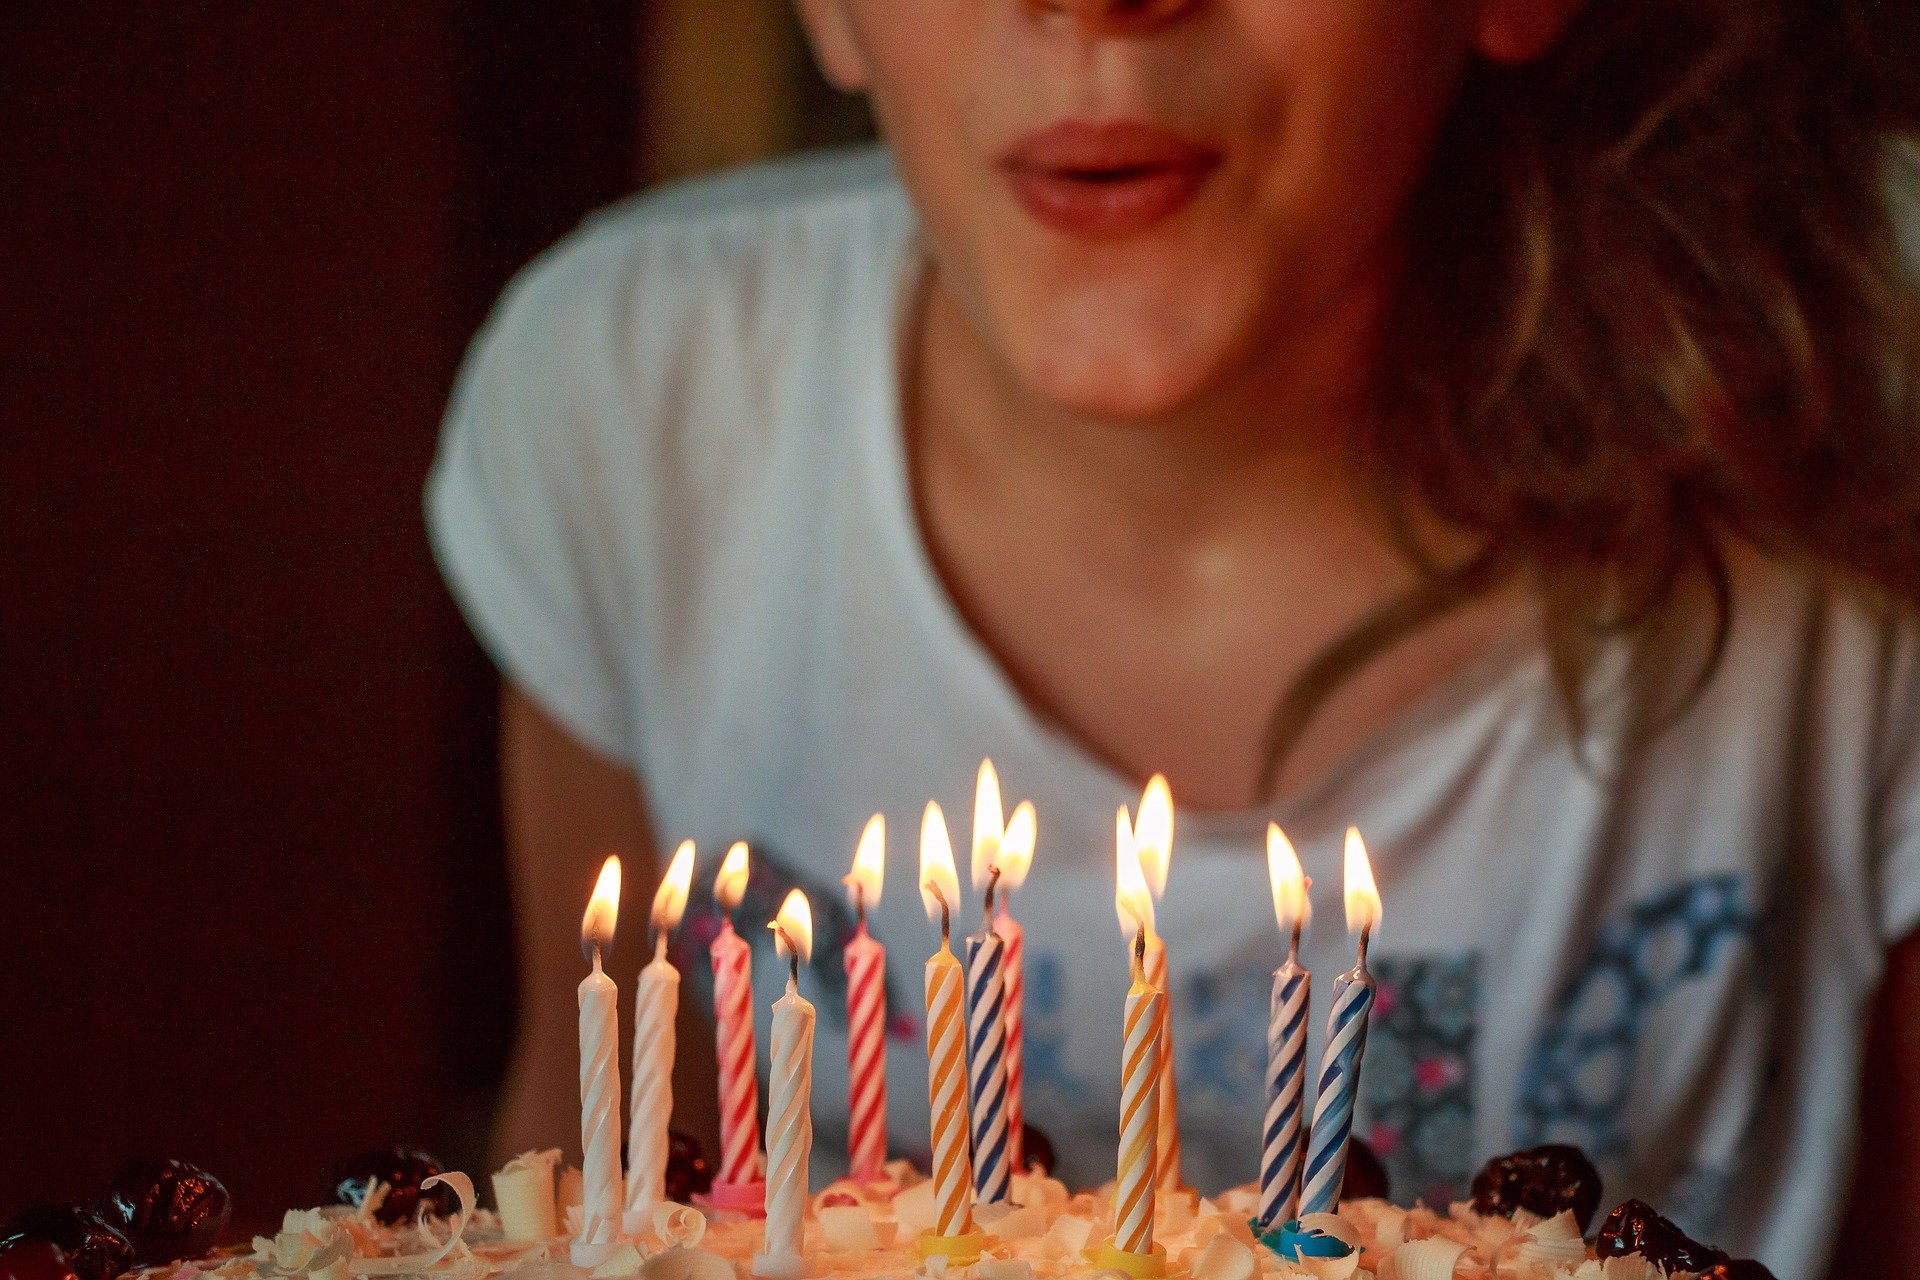 Person blowing out birthday candles (Pixabay)